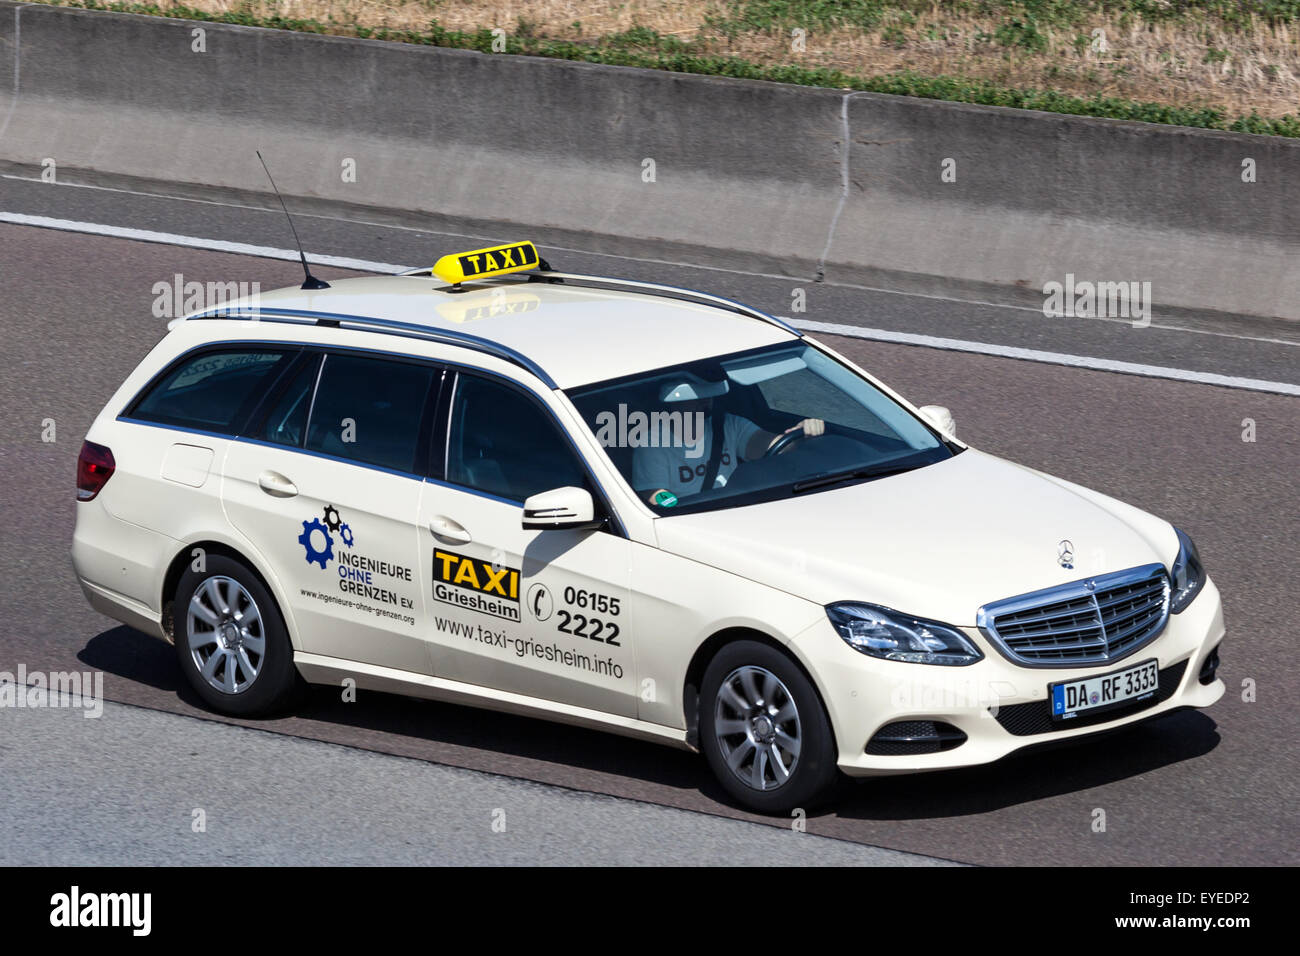 mercedes benz w212 station wagon taxi moving fast on the highway a5 stock photo 85755322 alamy. Black Bedroom Furniture Sets. Home Design Ideas